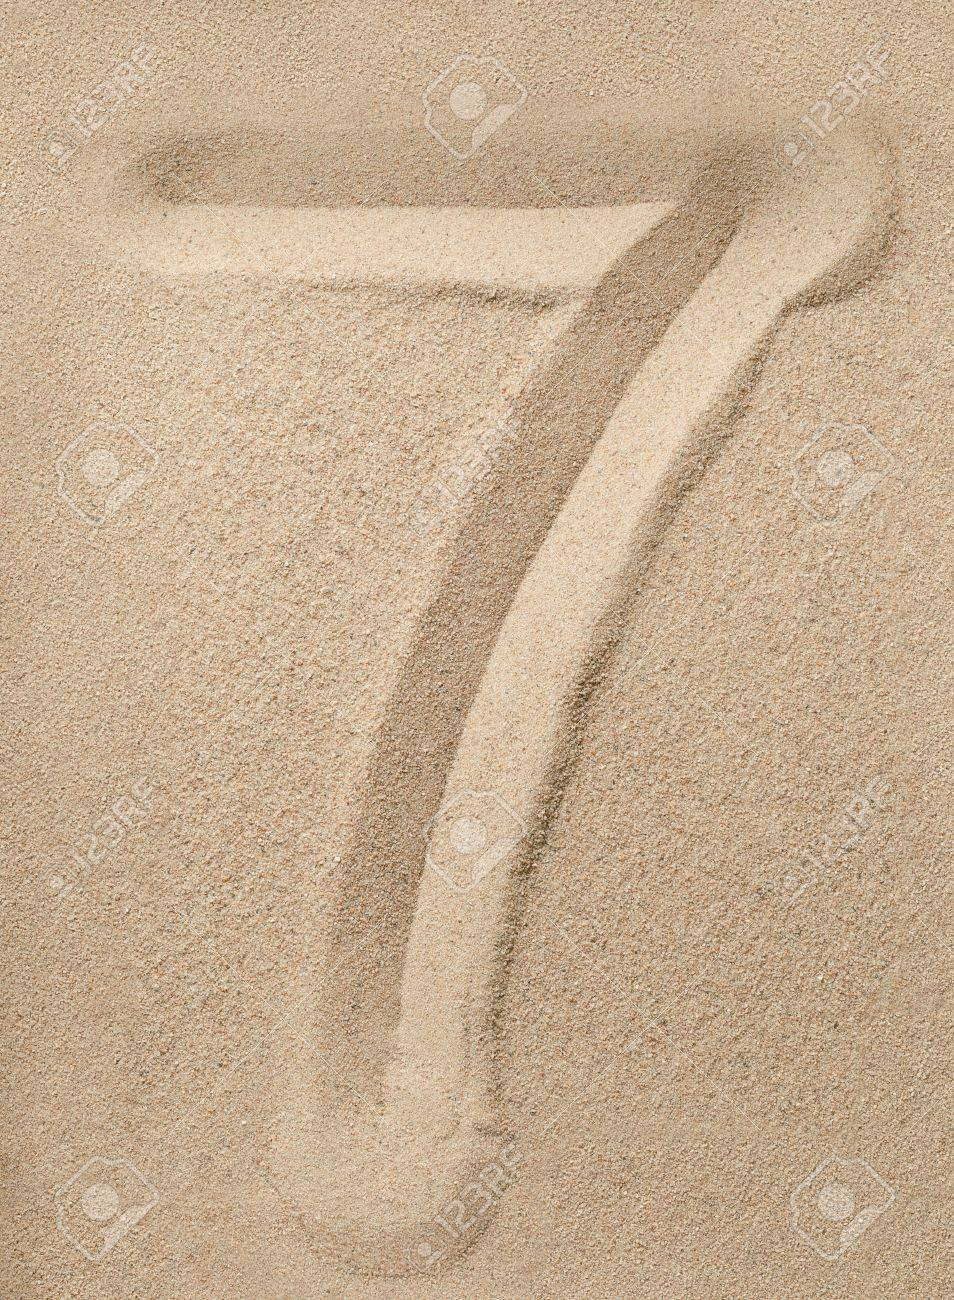 Number Seven Writing On The Sand Stock Photo, Picture And Royalty Free Image. Image 16851060.